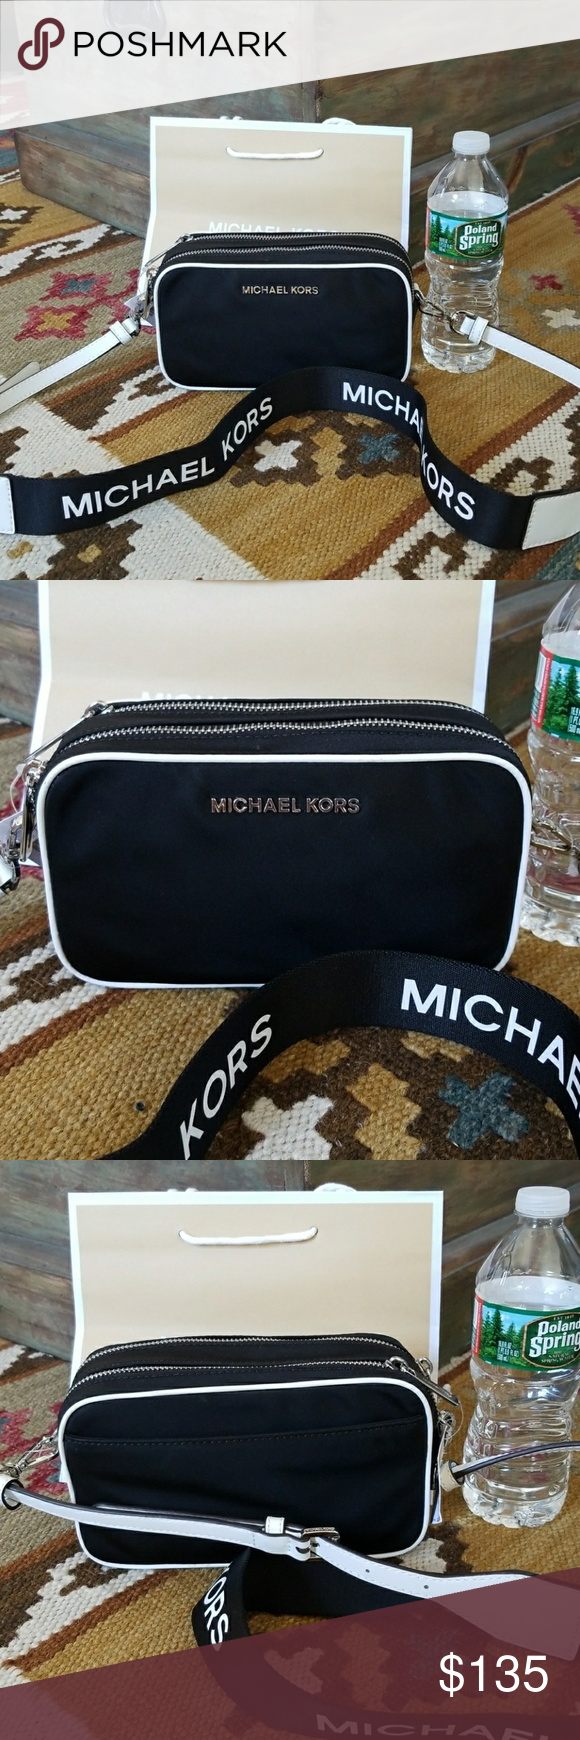 8c384bffbd69 Michael Kors Connie Small Camera Bag Crossbody Adorable Brand New 100%  Authentic Michael Kors Connie